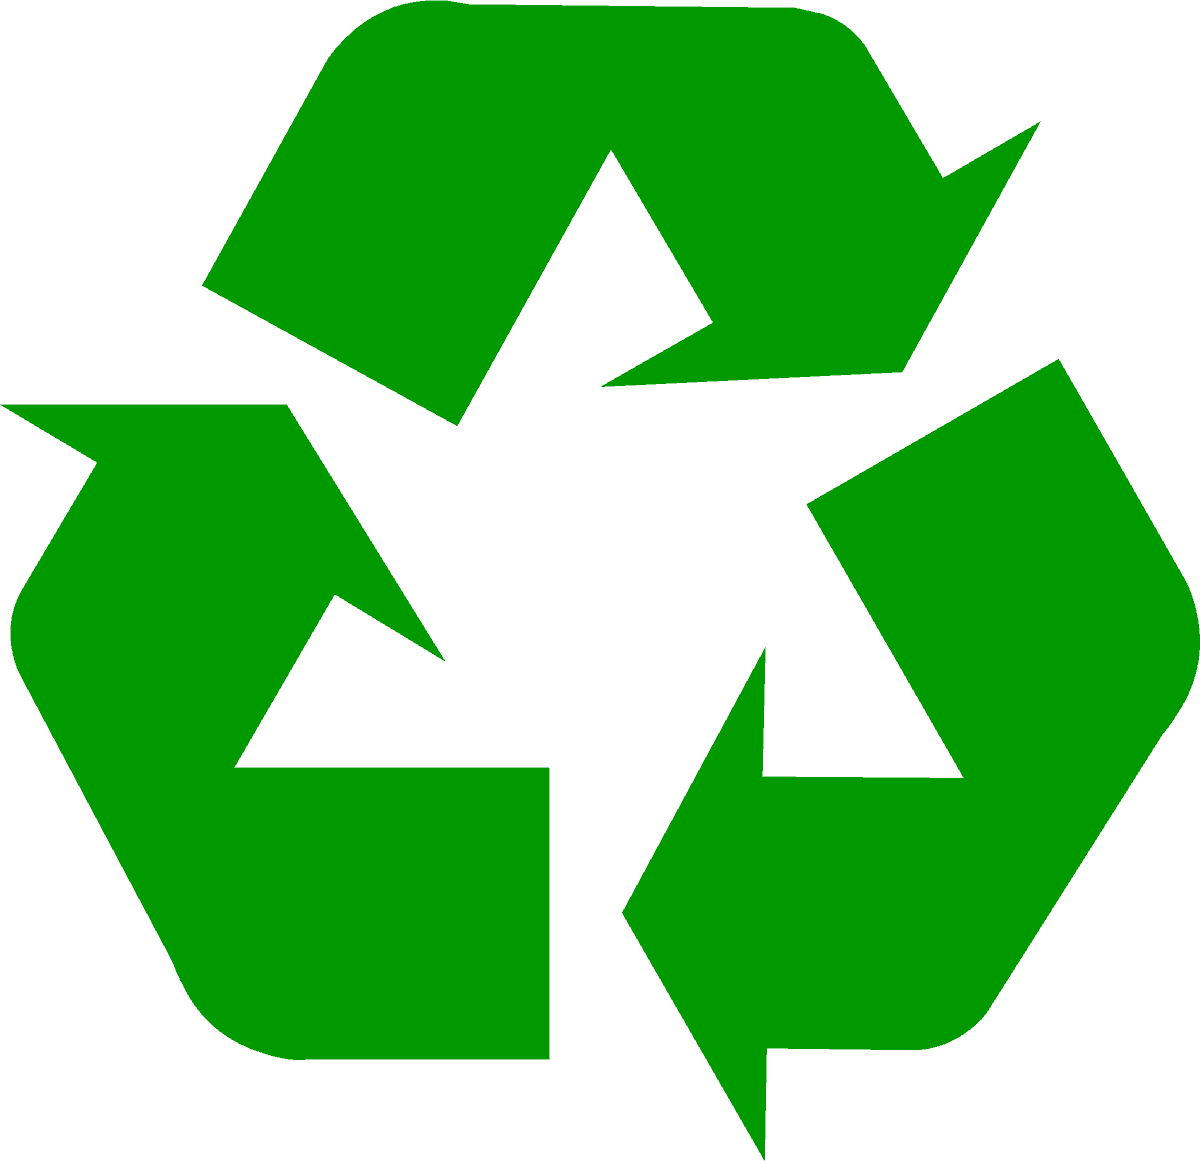 download recycling symbol the original recycle logo rh recycling com recycle logo vector png recycle logo vector download